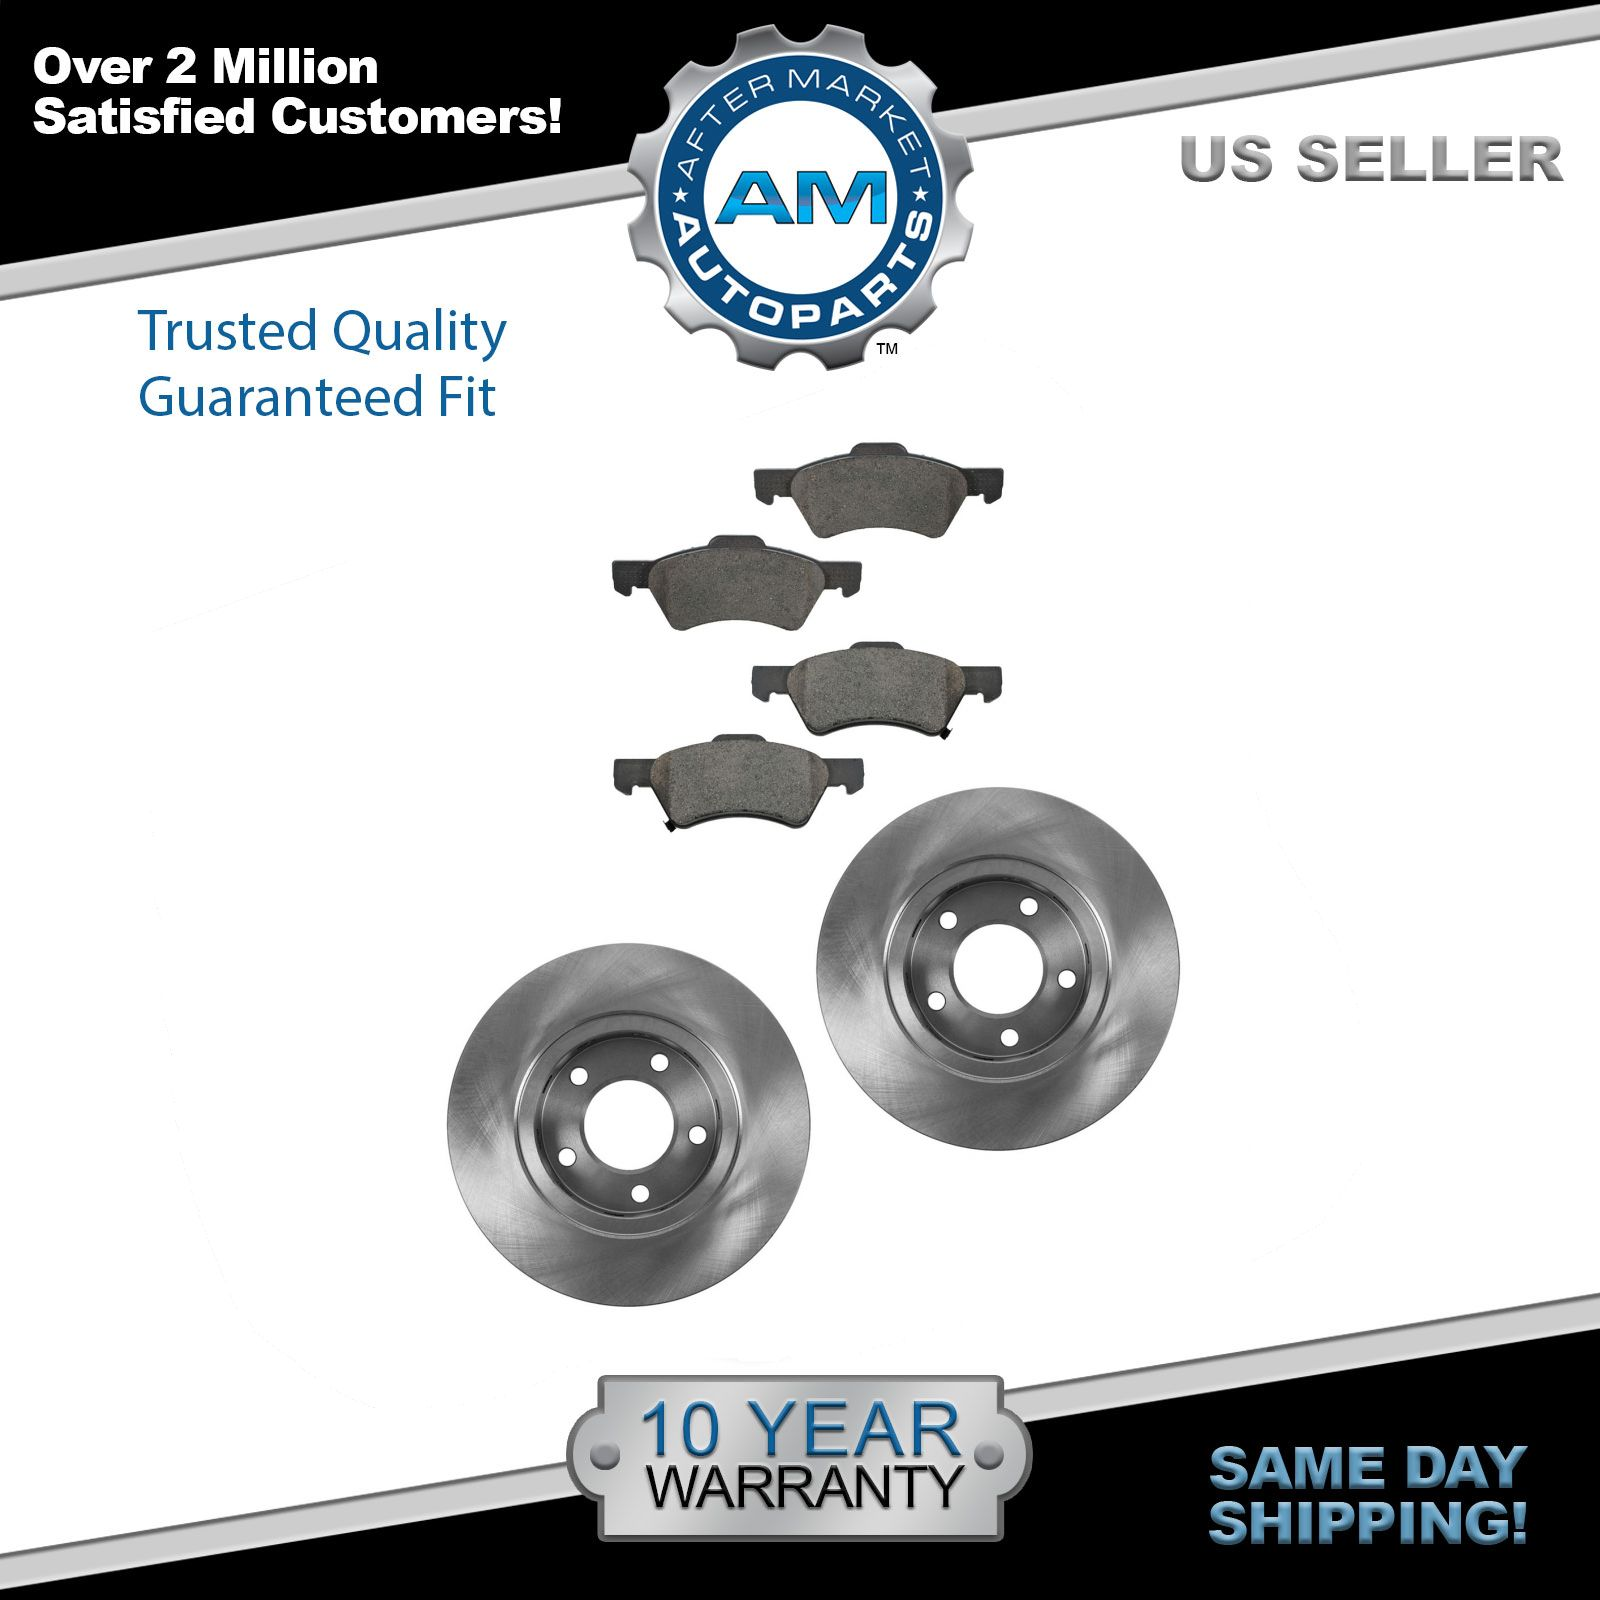 2016 Fits Jeep Cherokee North Rear Ceramic Brake Pads with Hardware Kits and Two Years Manufacturer Warranty